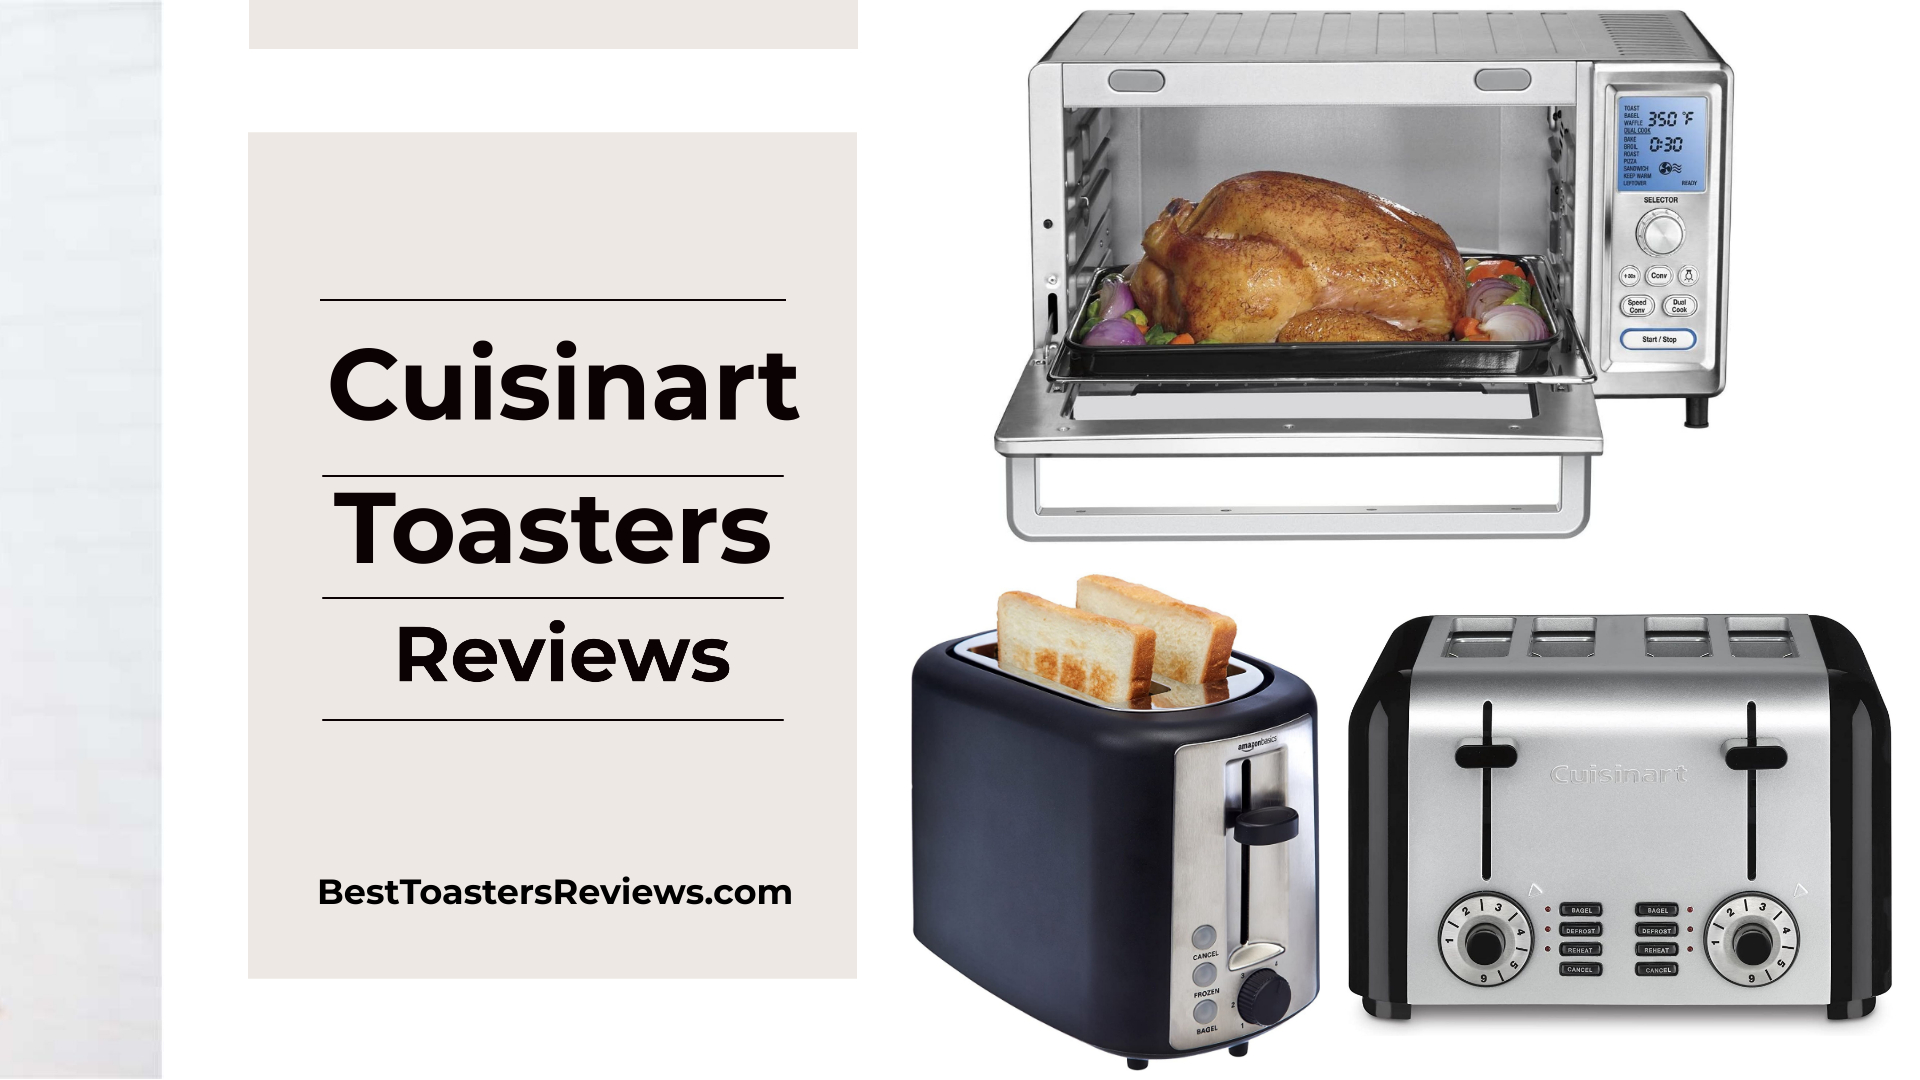 Best Cuisinart Toasters Reviews